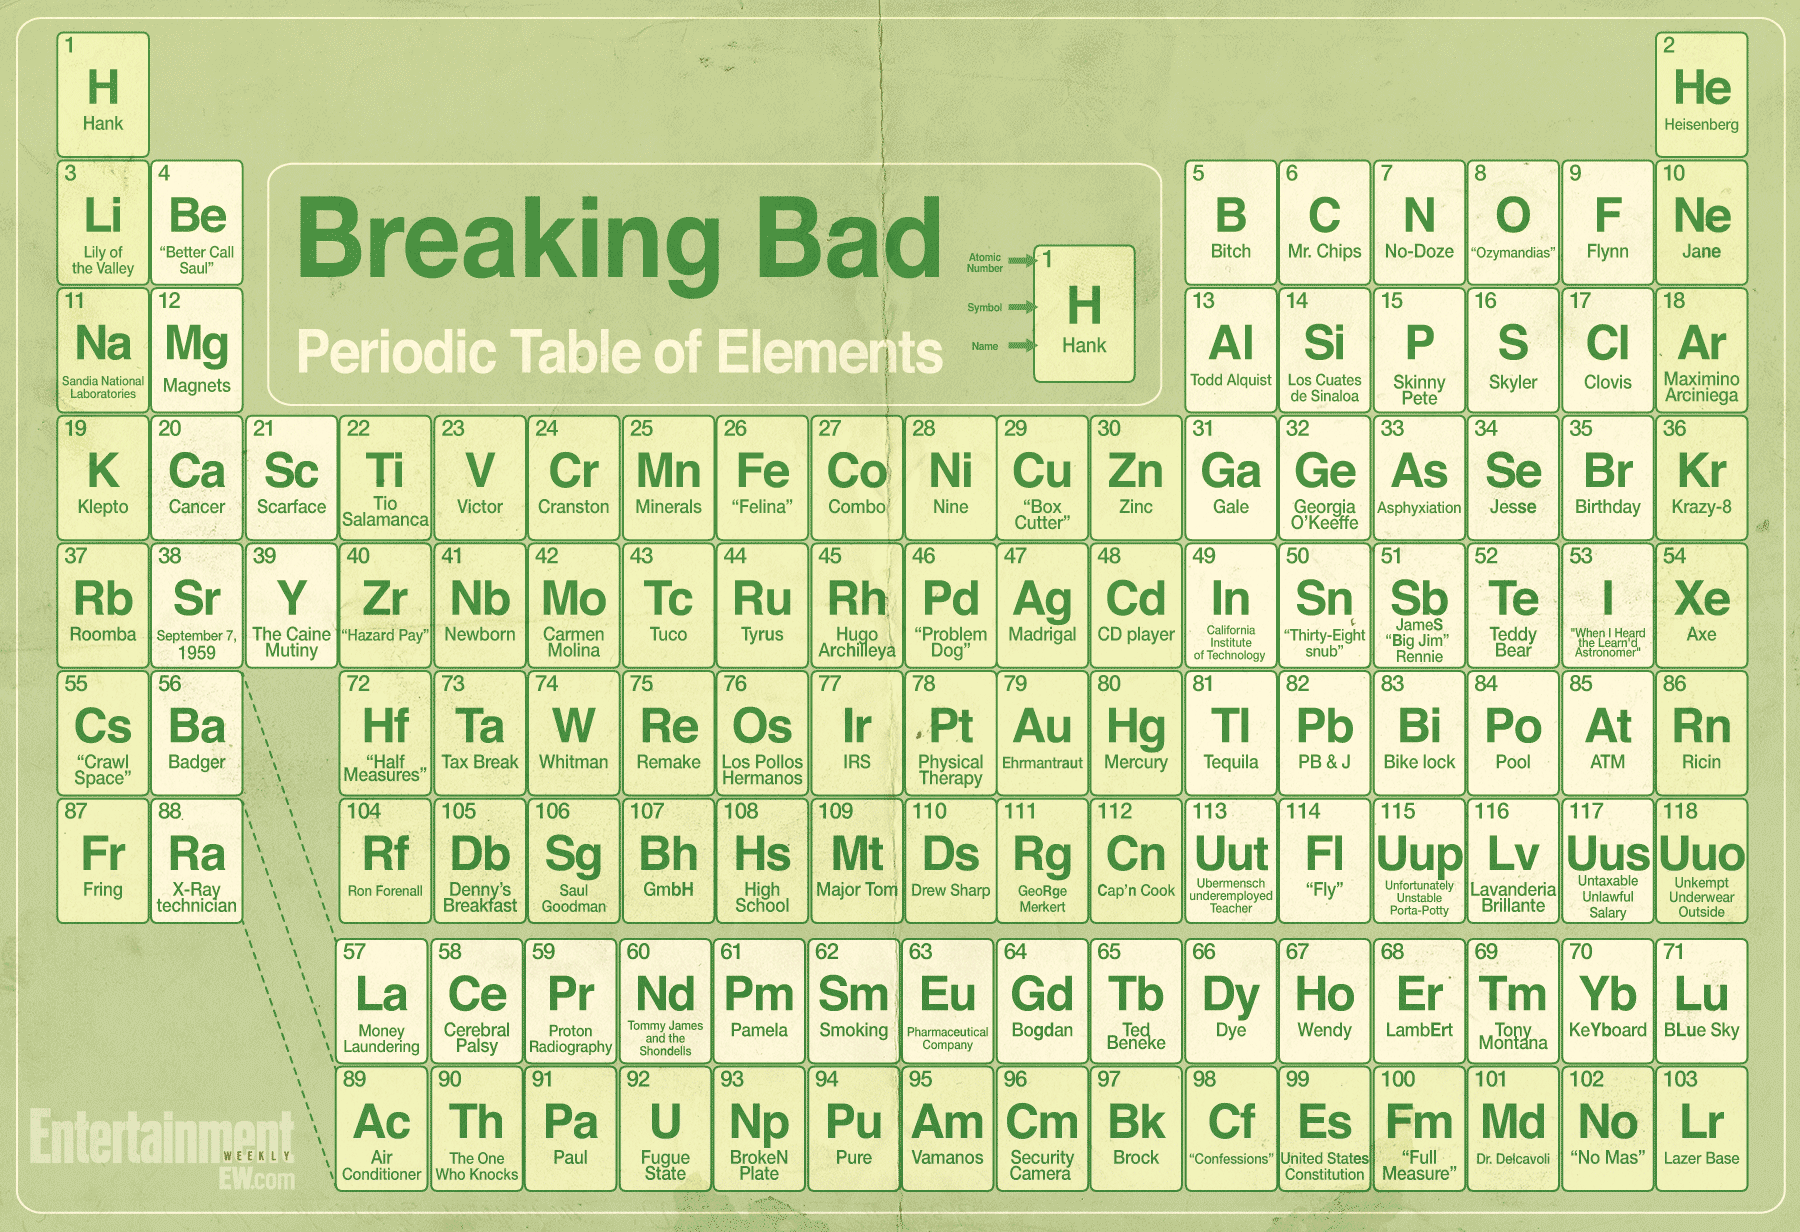 Breaking bad from h to uuo 118 elements of the series breaking bad from h to uuo 118 elements of the series gamestrikefo Image collections